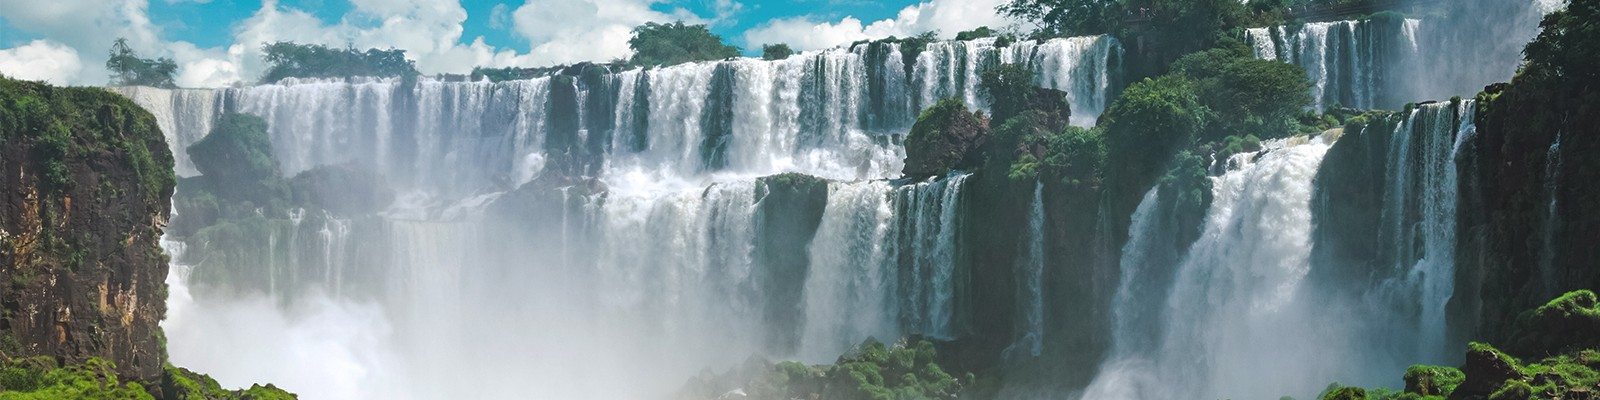 south america - luxury south america honeymoon packages